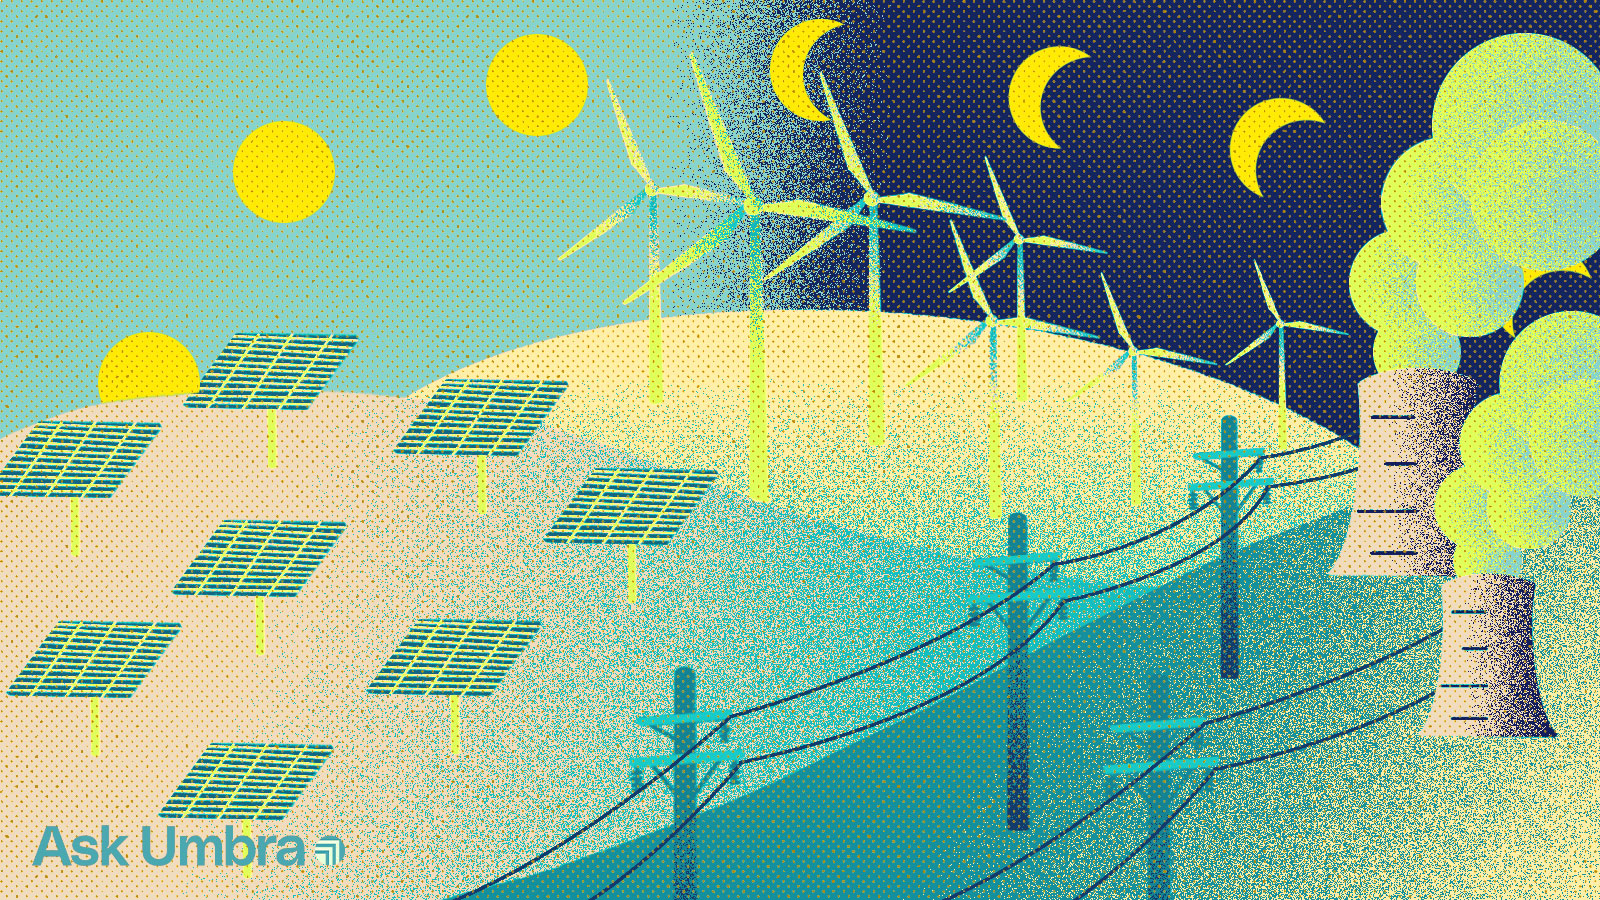 Illustration of a landscape with solar panels, wind turbines, cooling towers, and power lines